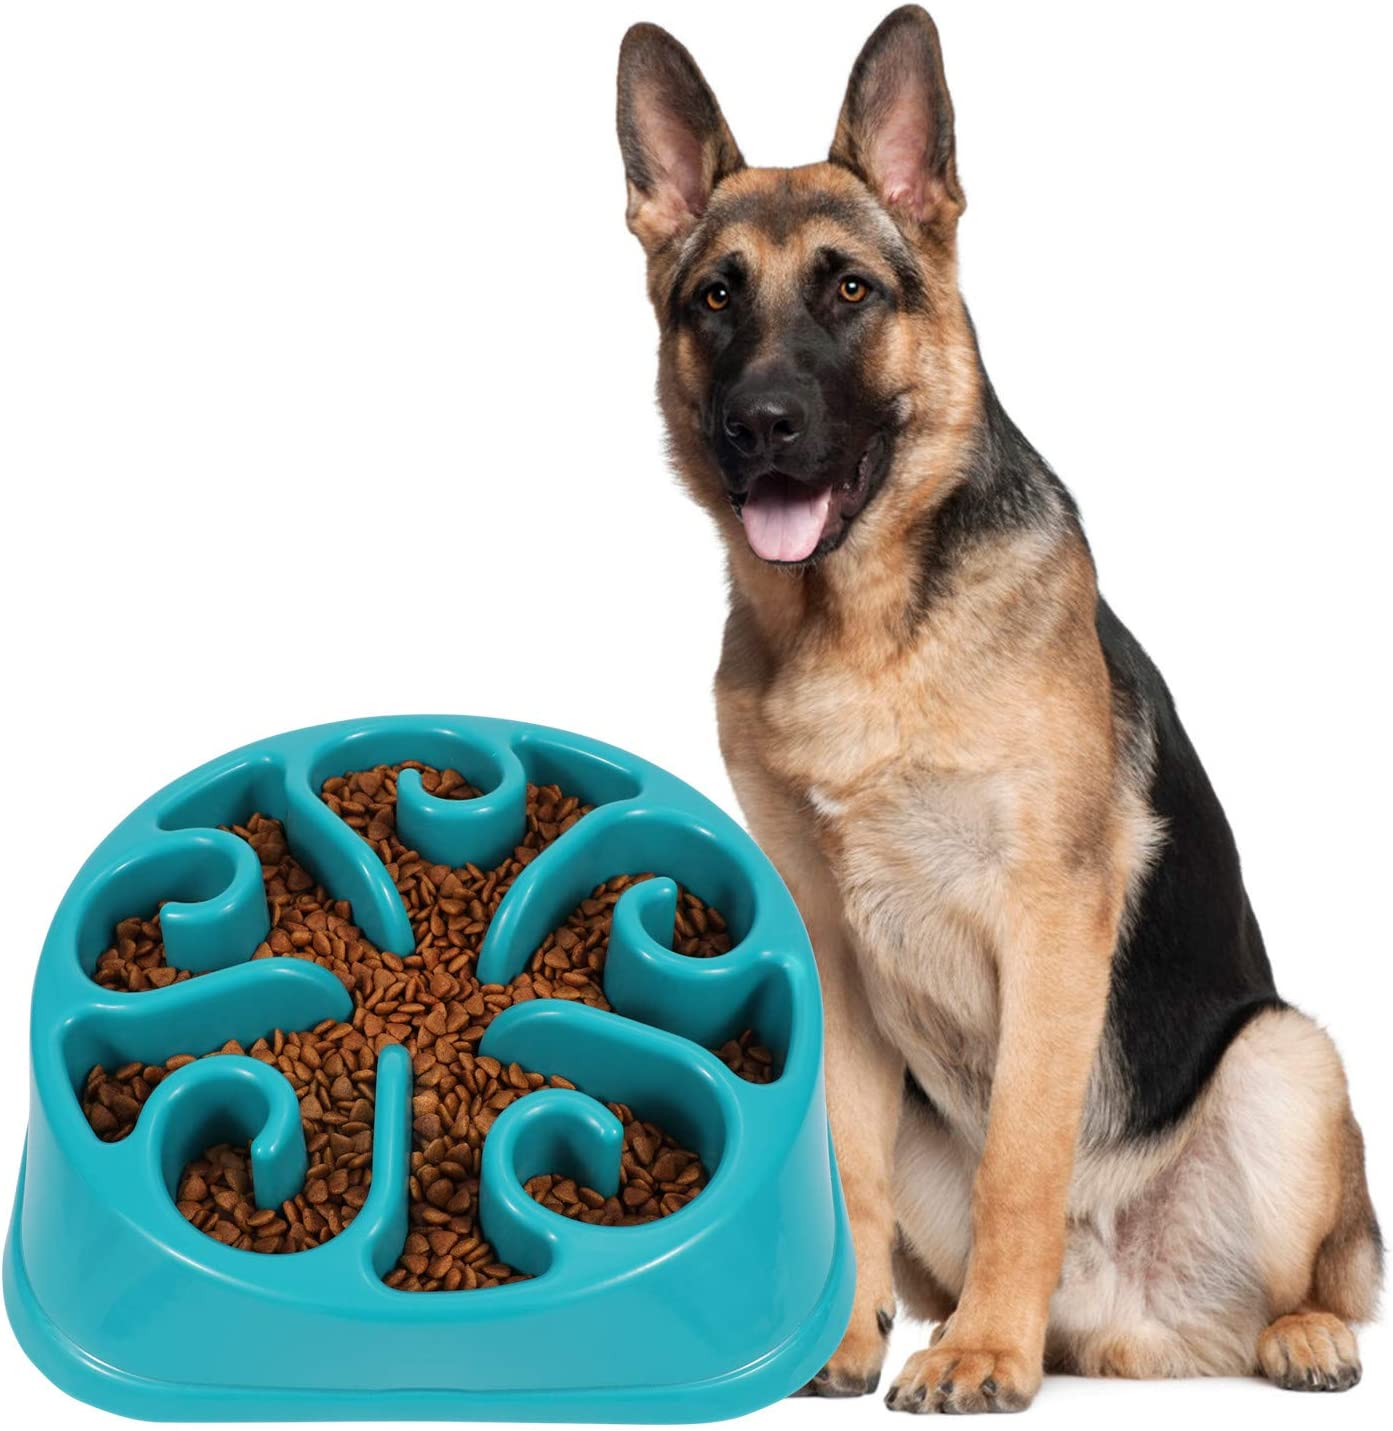 JASGOOD Large Dogs Bowl,Fun Slow Feeder Dog Bowl,Anti-Gulping Dog Slow Feeder Stop Bloat,Eco-Friendly Durable Big Pet Bowl